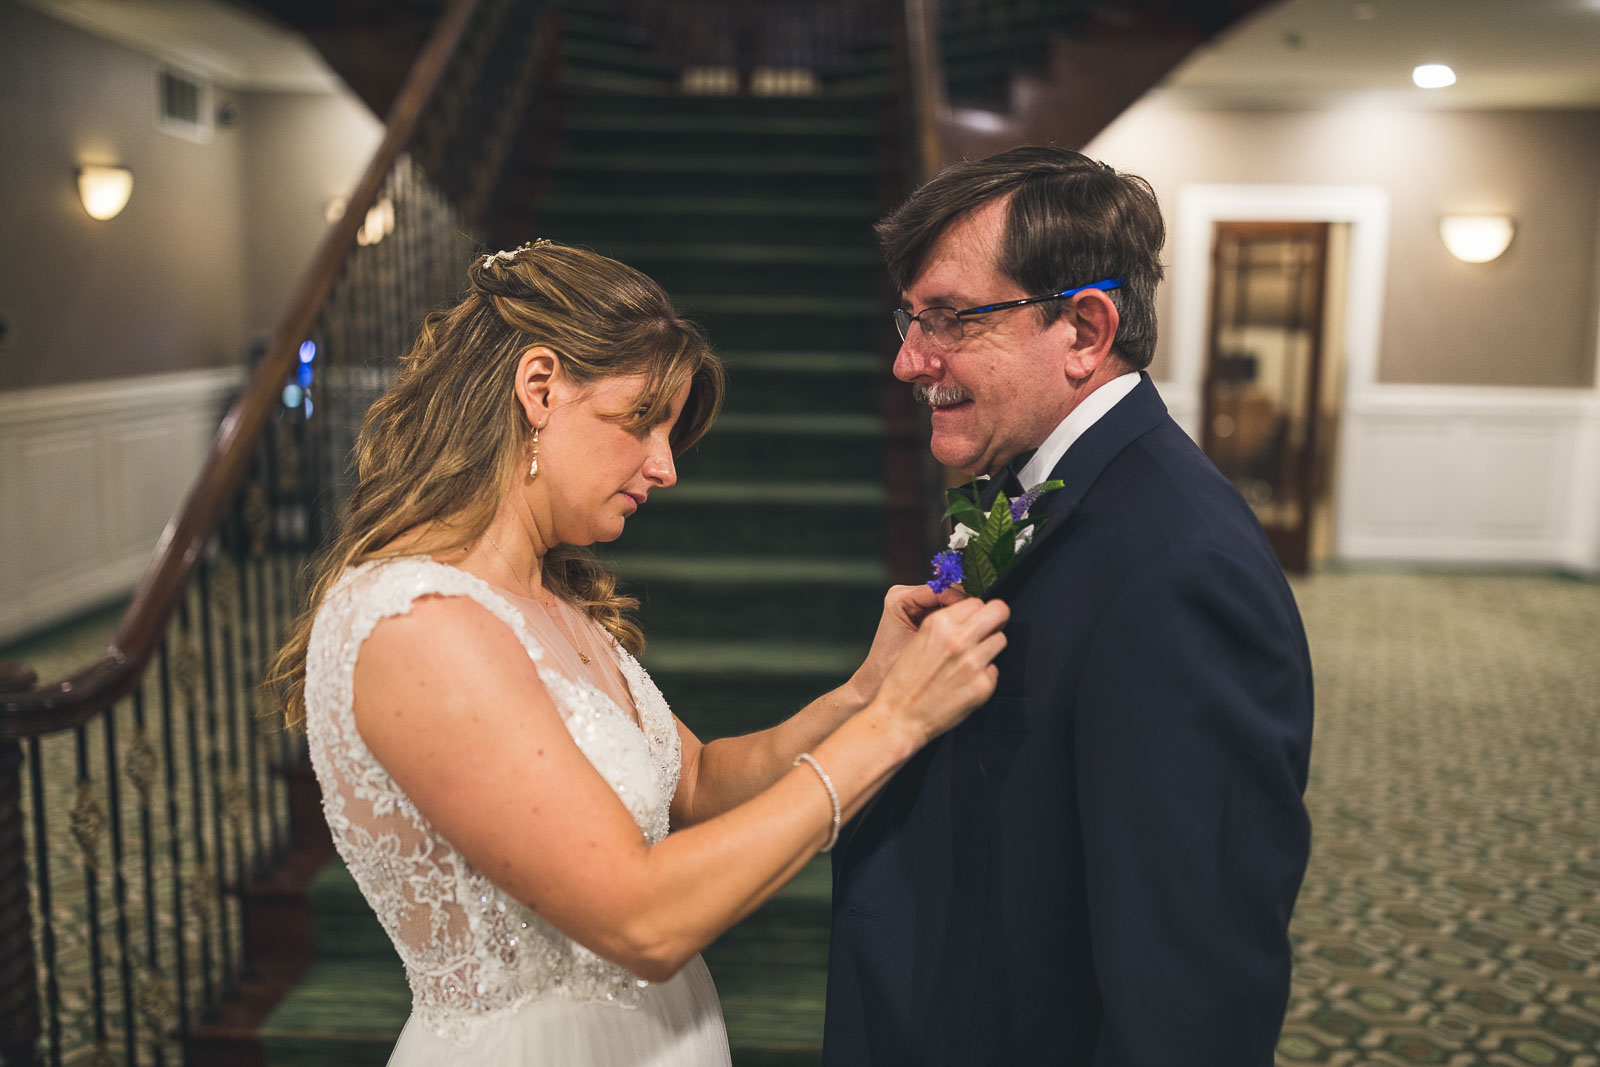 Bride puts boutineer on father